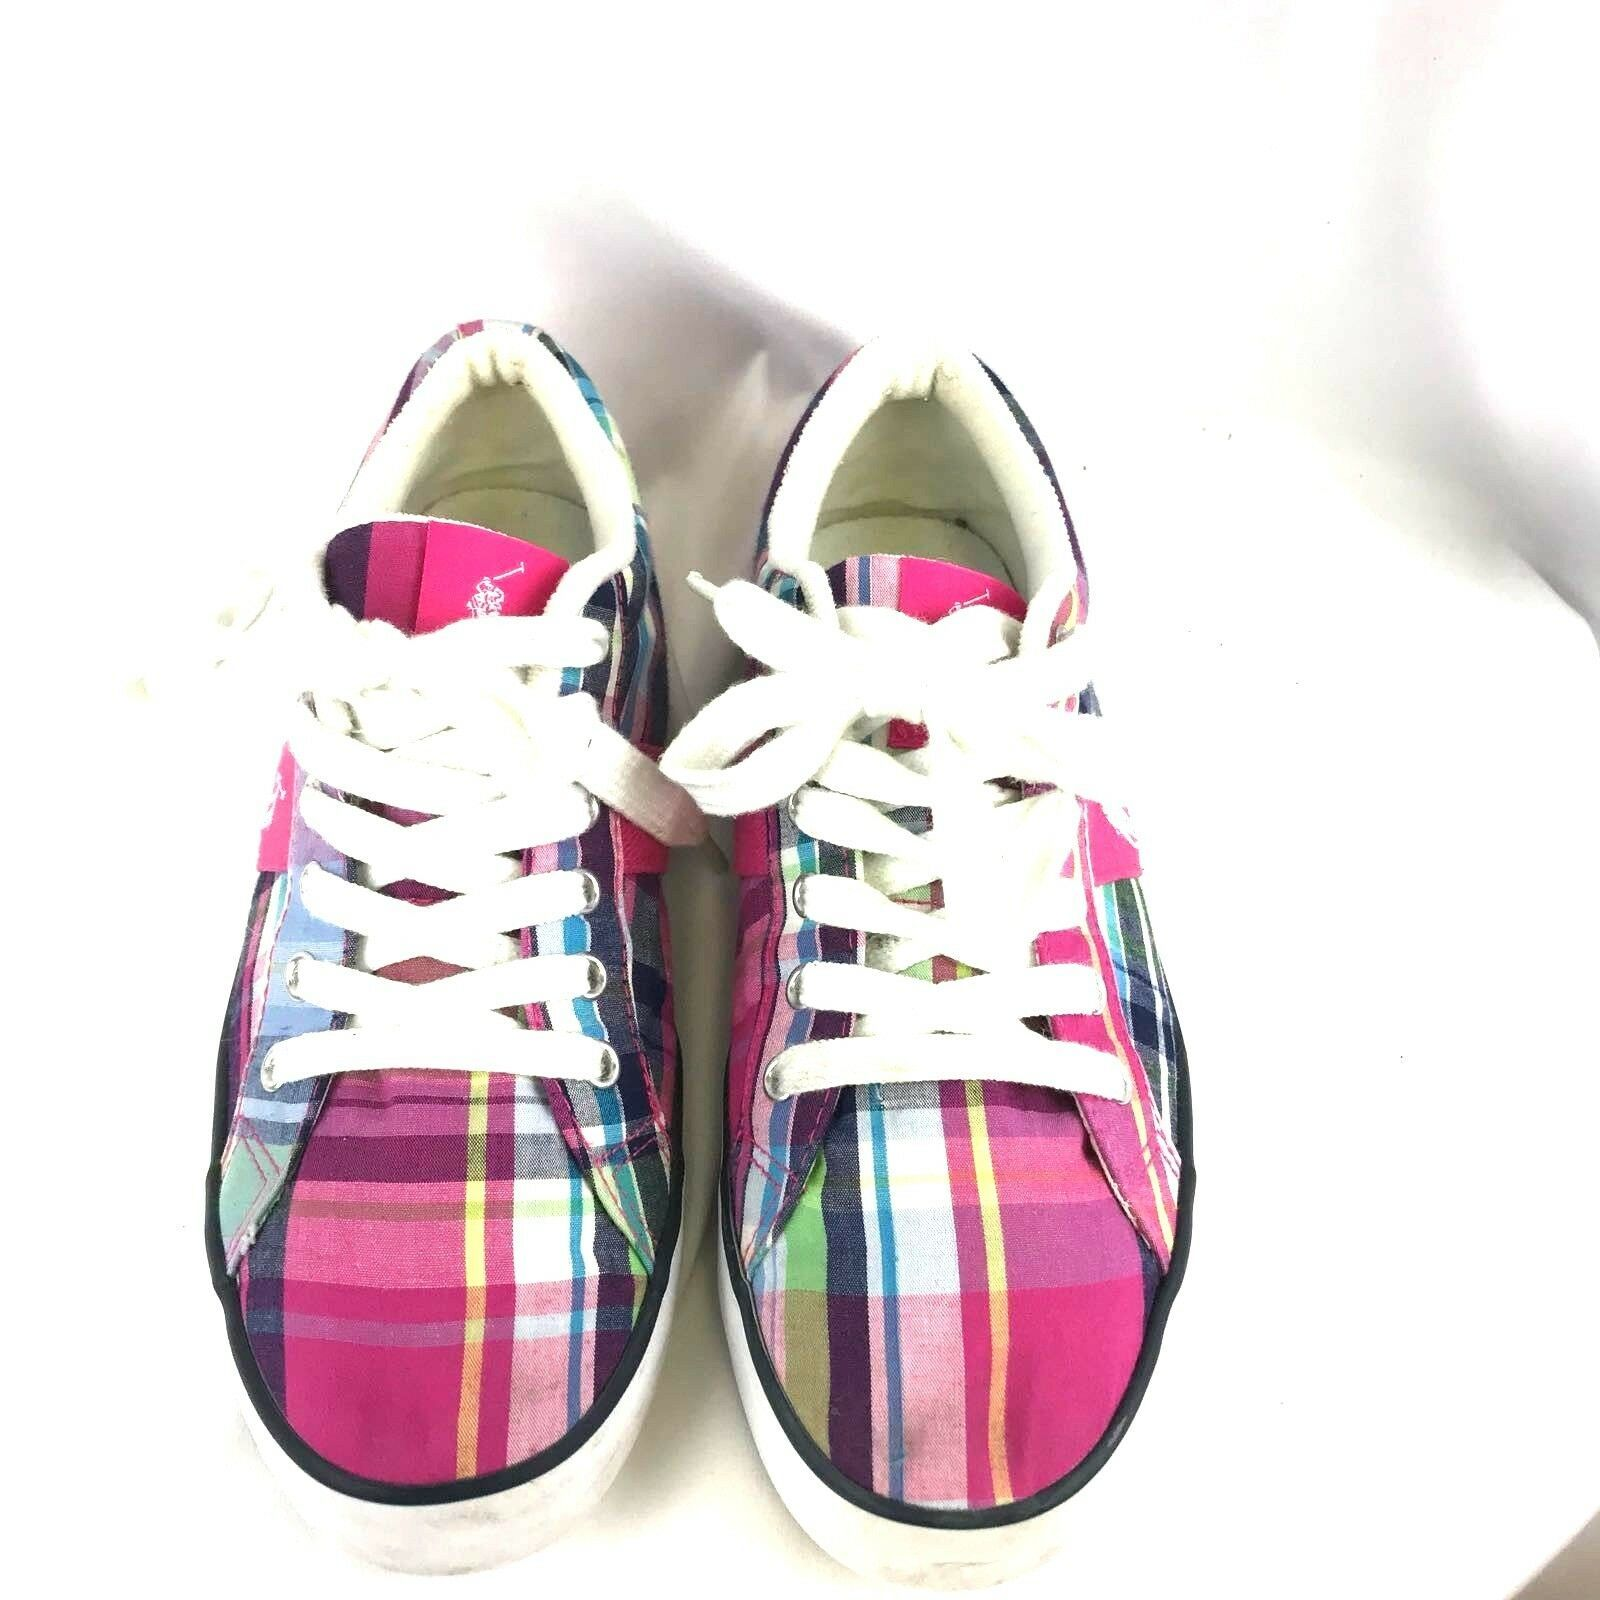 Polo Ralph Lauren Women's Fashion Sneakers PLaid Pink Purple 6 US Lace Up - $42.65 CAD